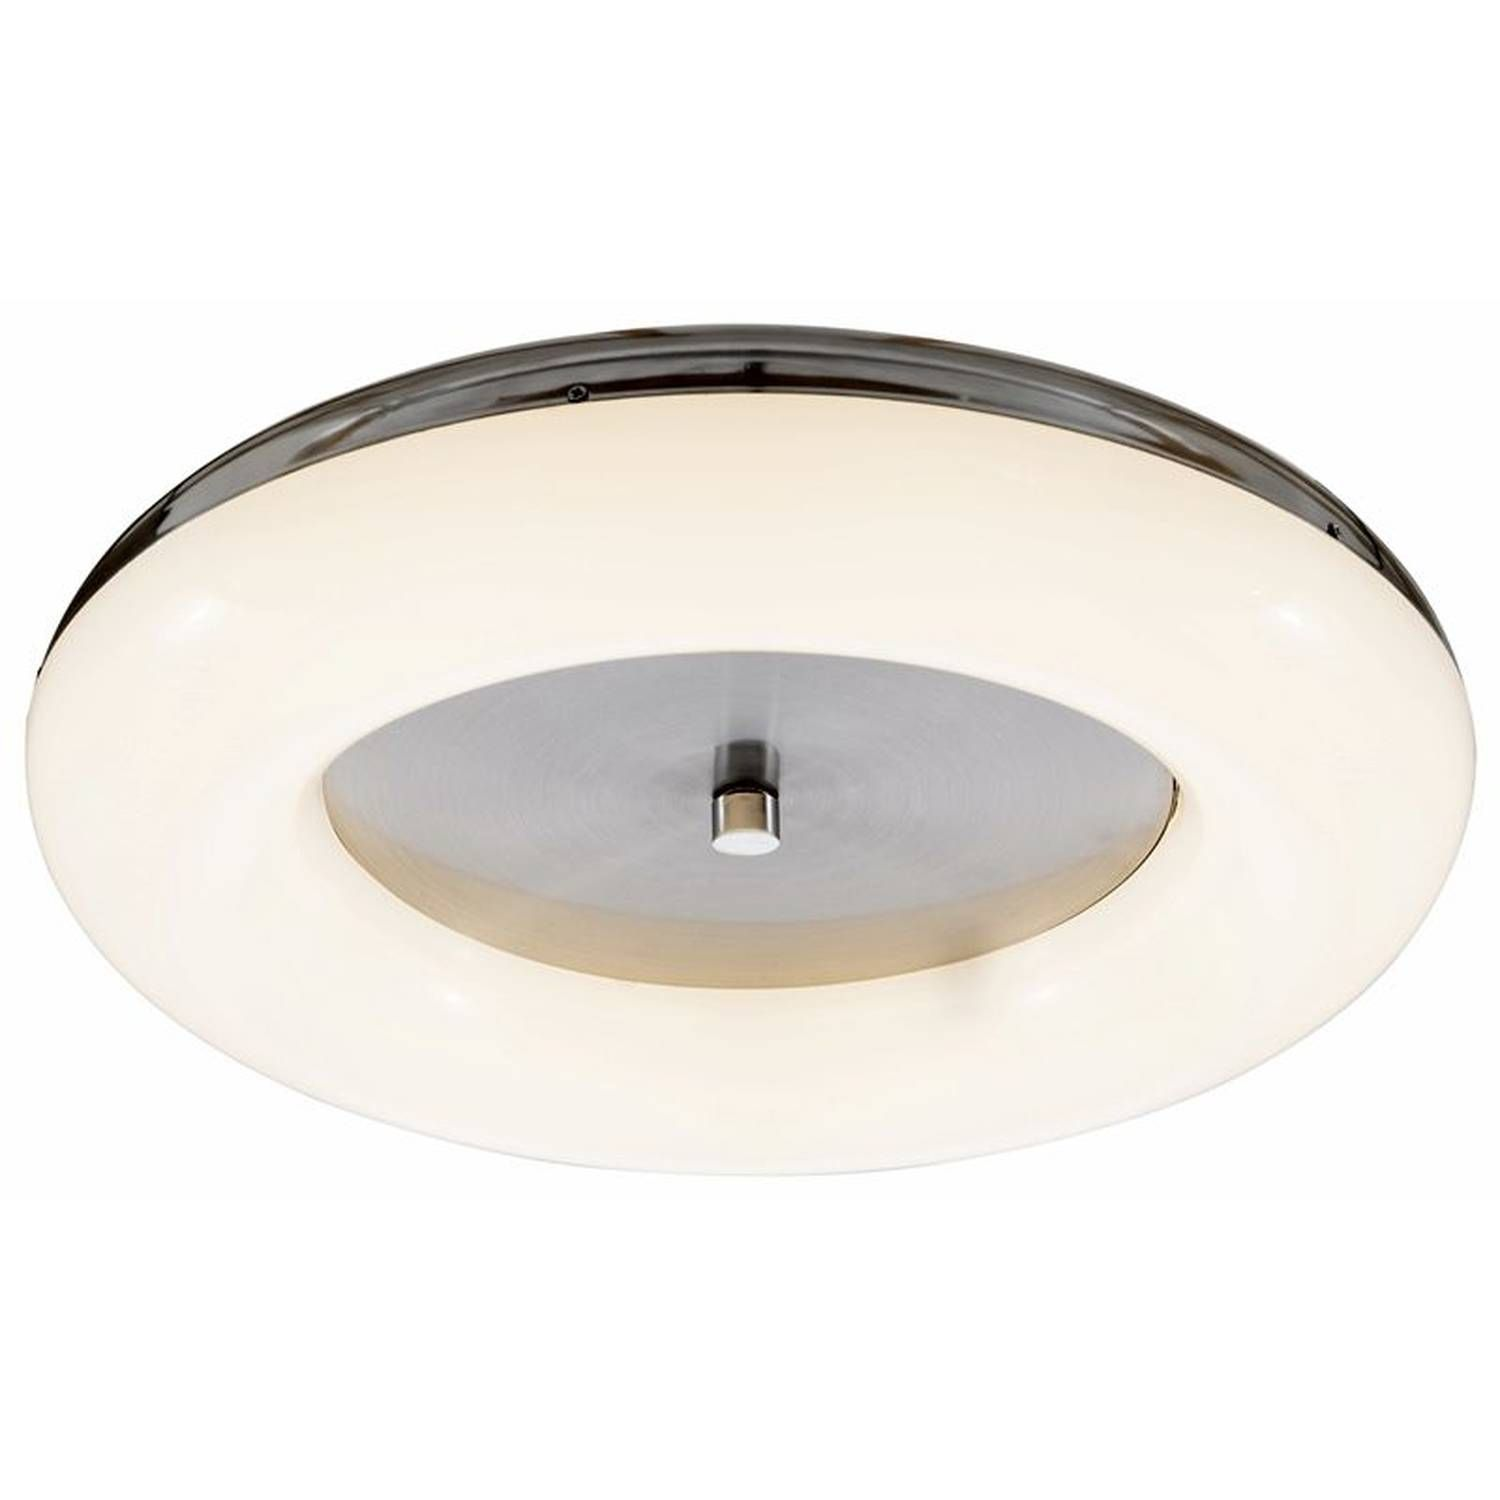 Landhaus Deckenleuchte Badezimmerlampe Mit Steckdose Kaufen | Lampe Flur Landhaus | Runde Deckenleuchte... - My Blog - My Blog - My Blog | Ceiling Lamp, Bathroom Lamp, Clear Glass Lamps